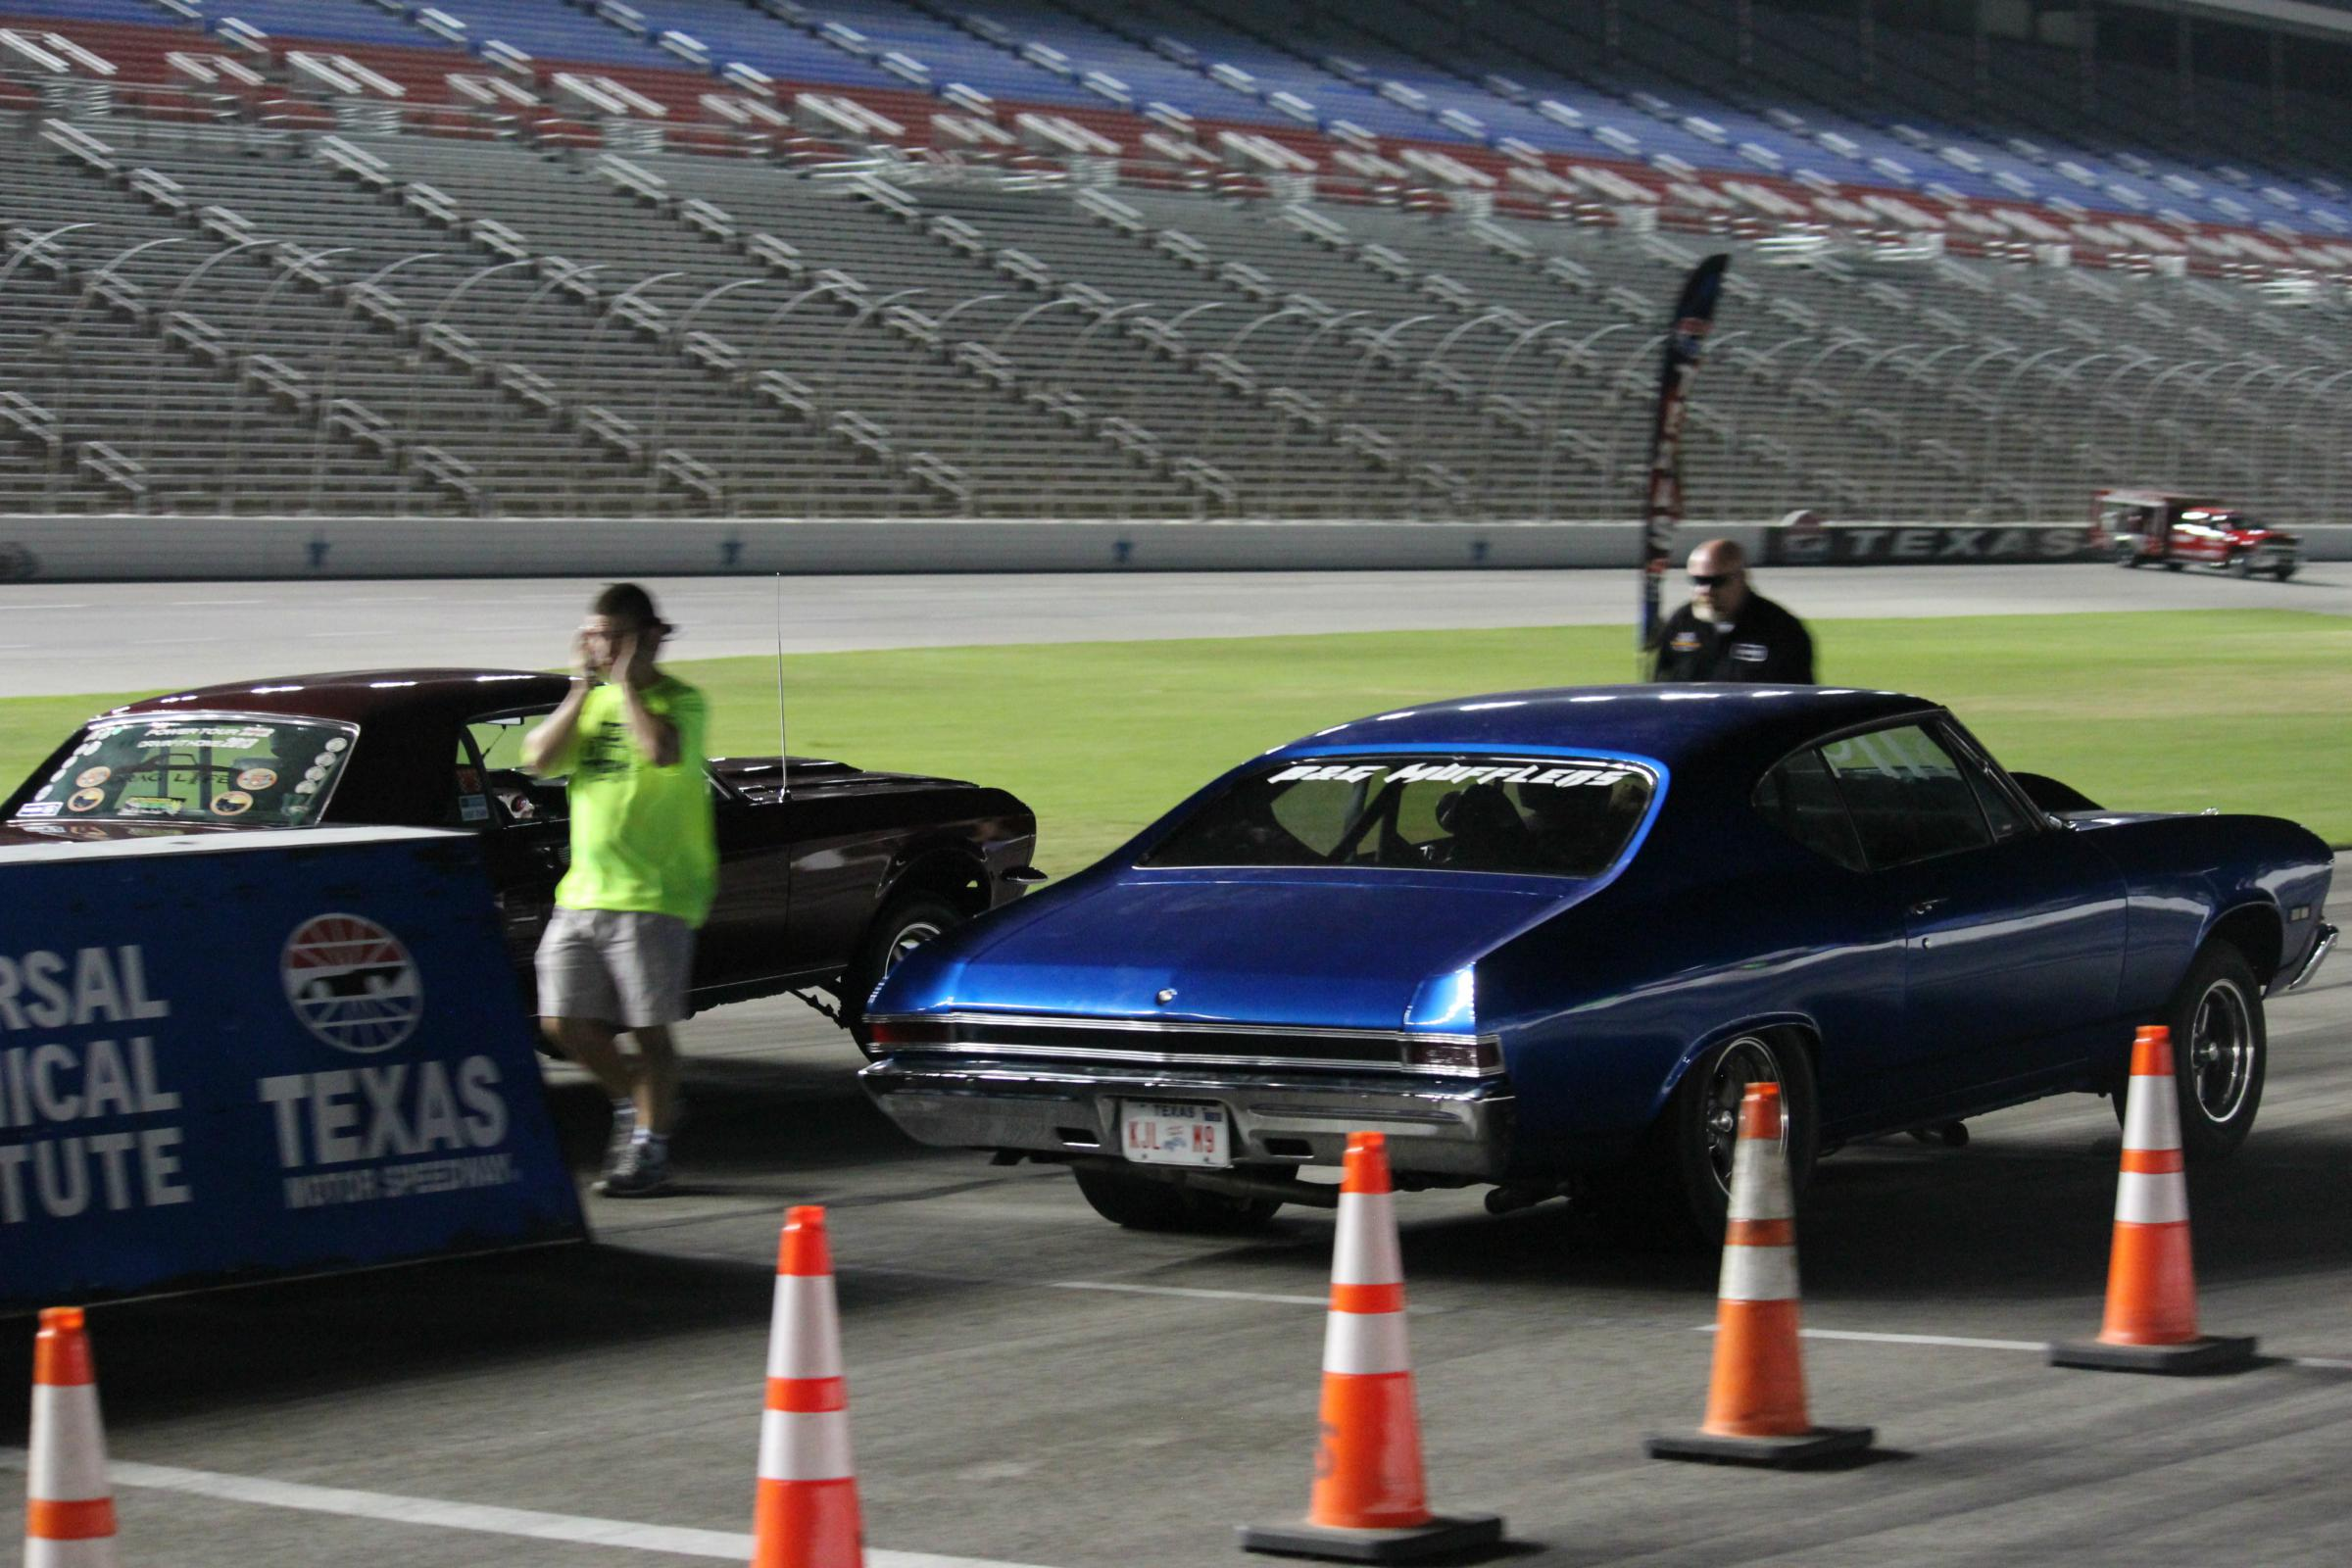 The Texas Motor Speedway started inviting amateur drivers in to race during the summers a decade ago. Part of the reason was to cut down on illegal street ...